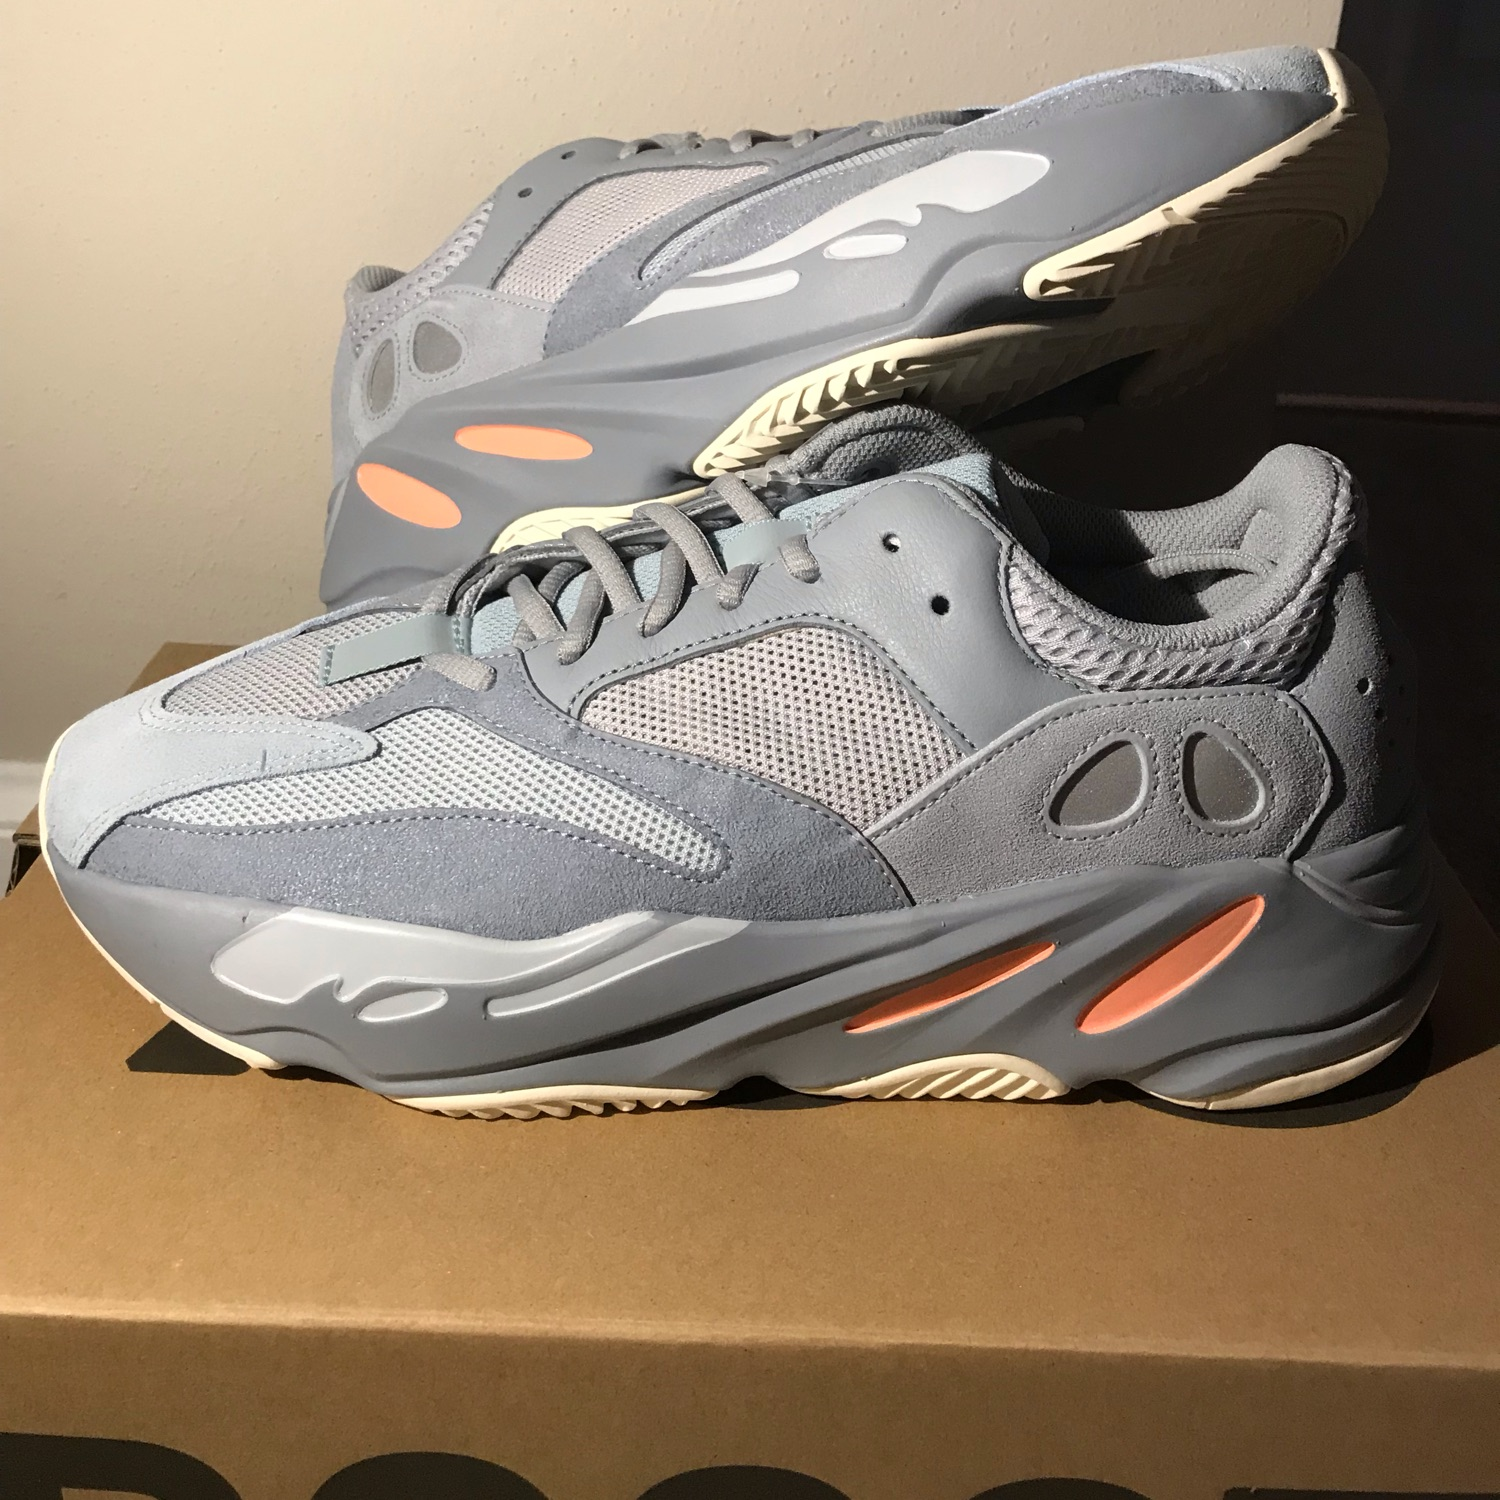 lowest price 7e854 2aafe Adidas Yeezy Boost 700 Inertia Size 10.5 Brand New